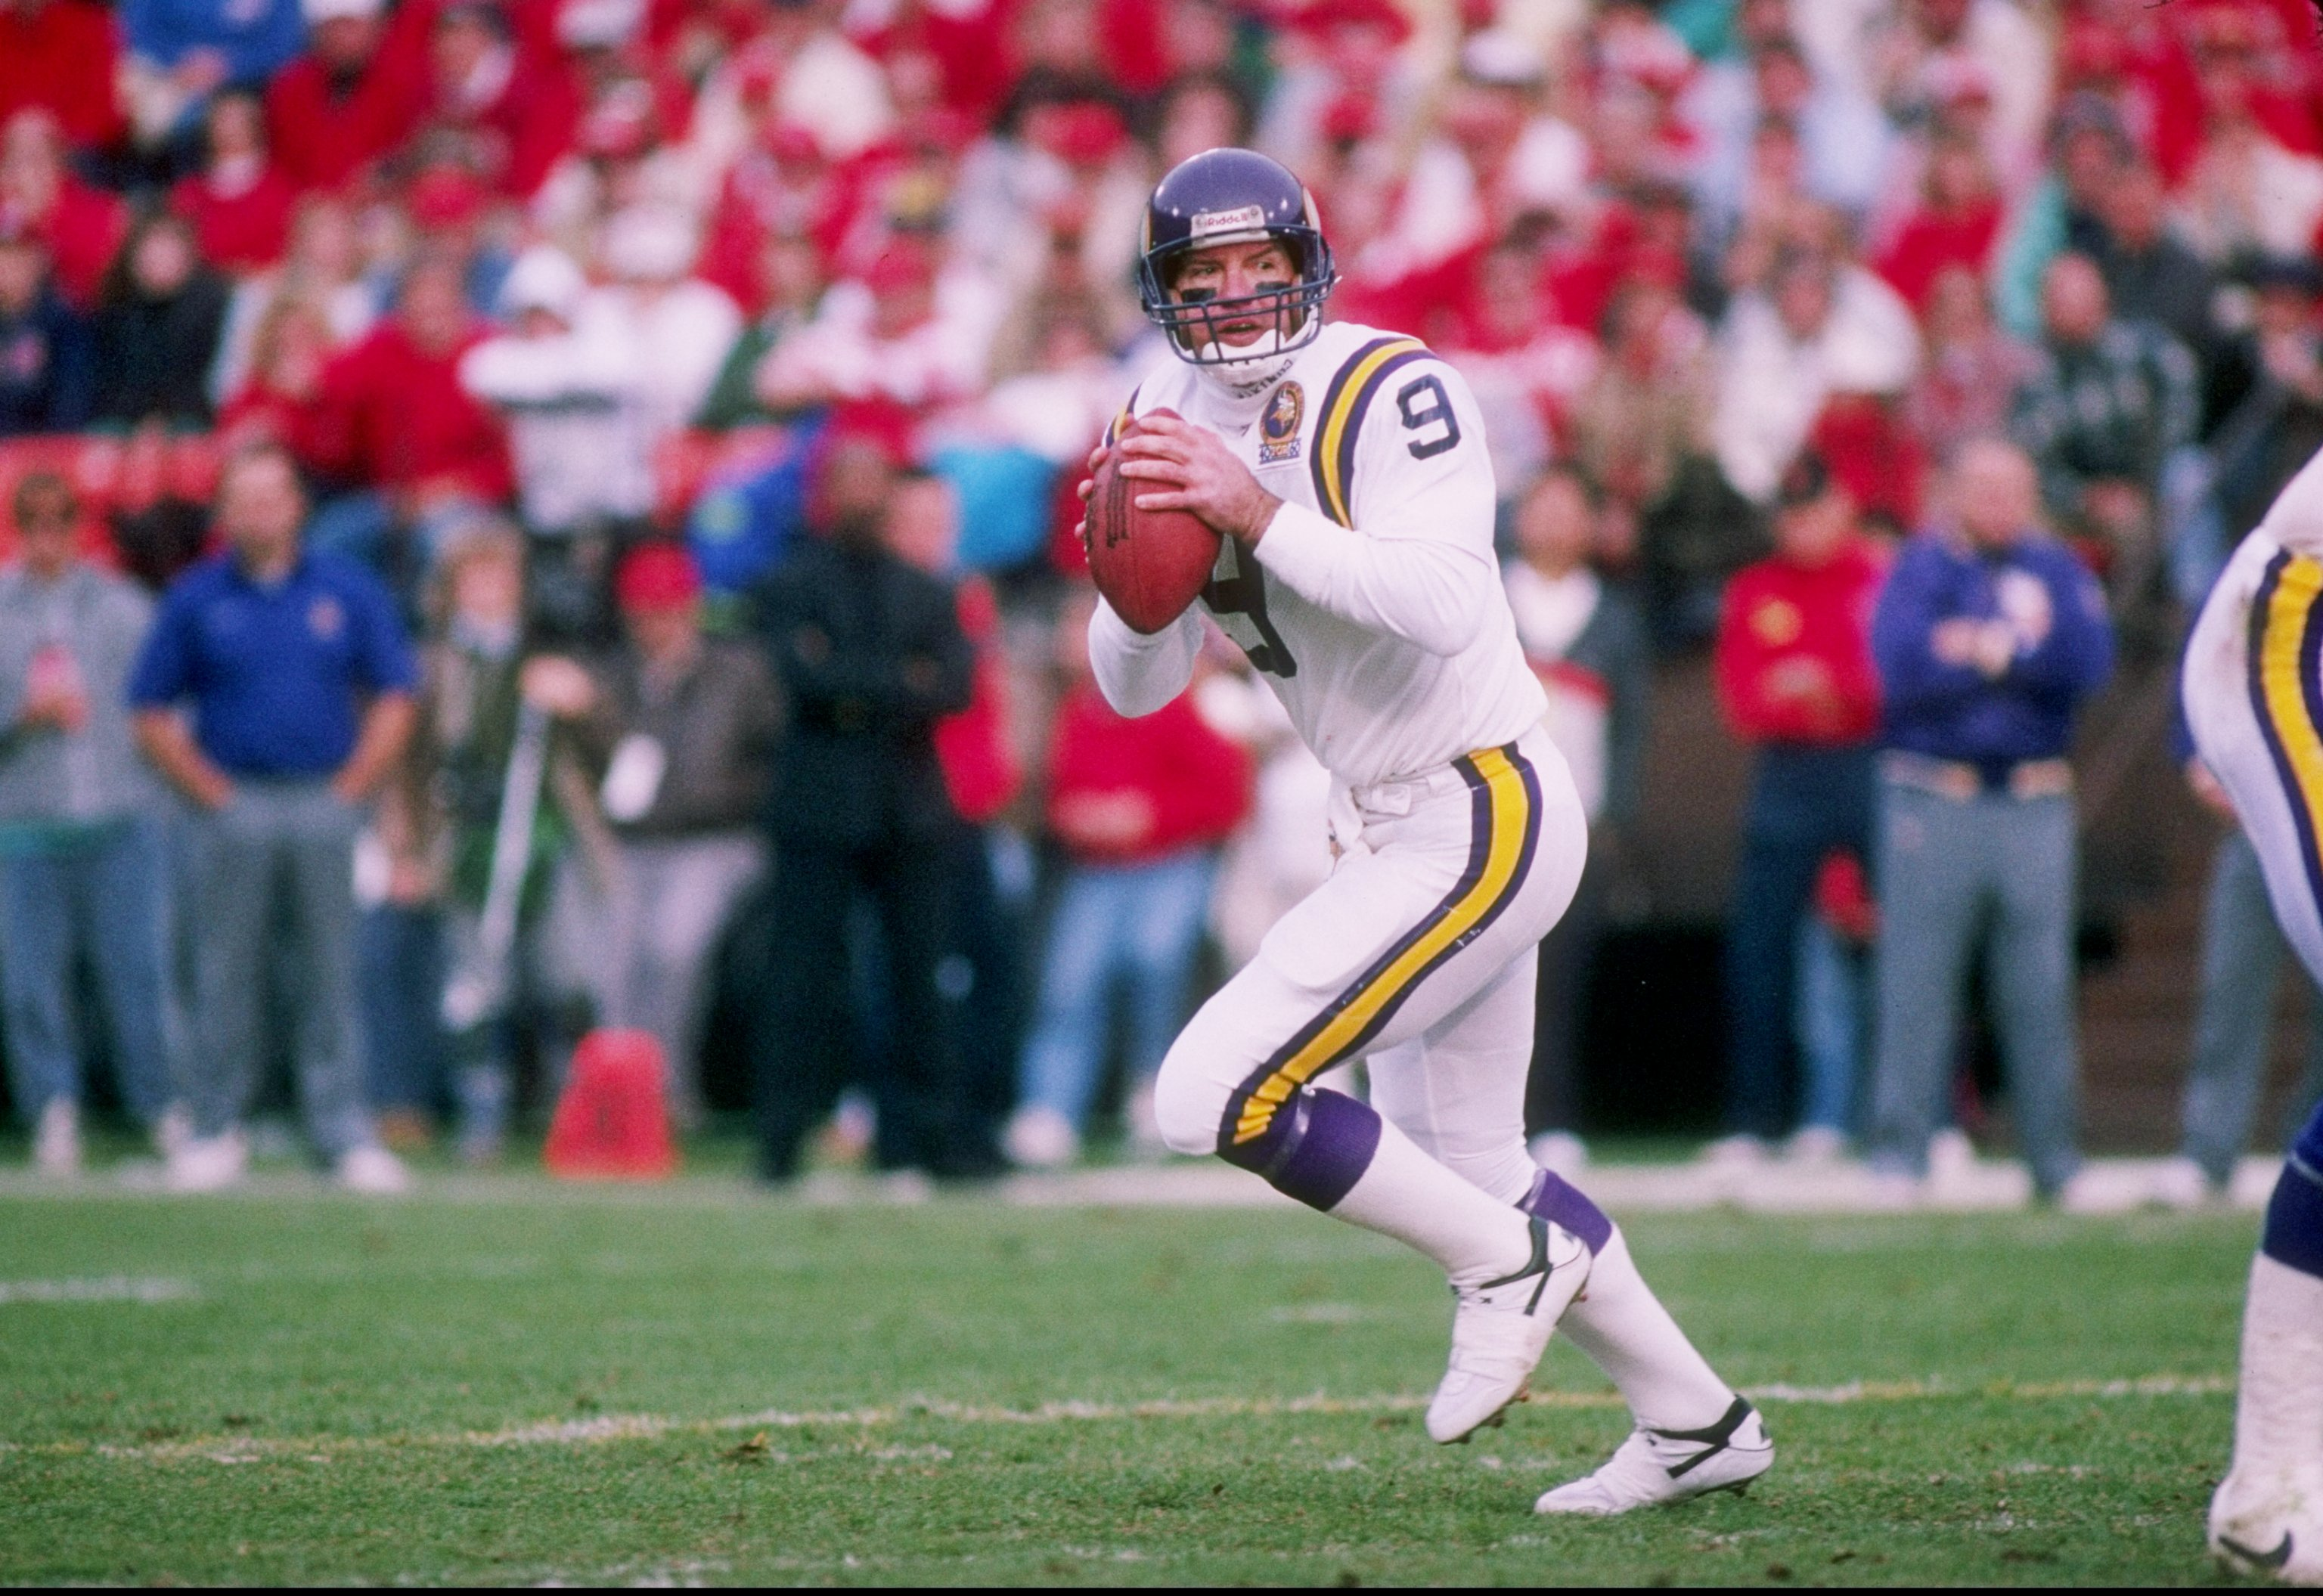 Why Does Tommy Kramer, Former Vikings QB, Have a Packers Urinal in His House?